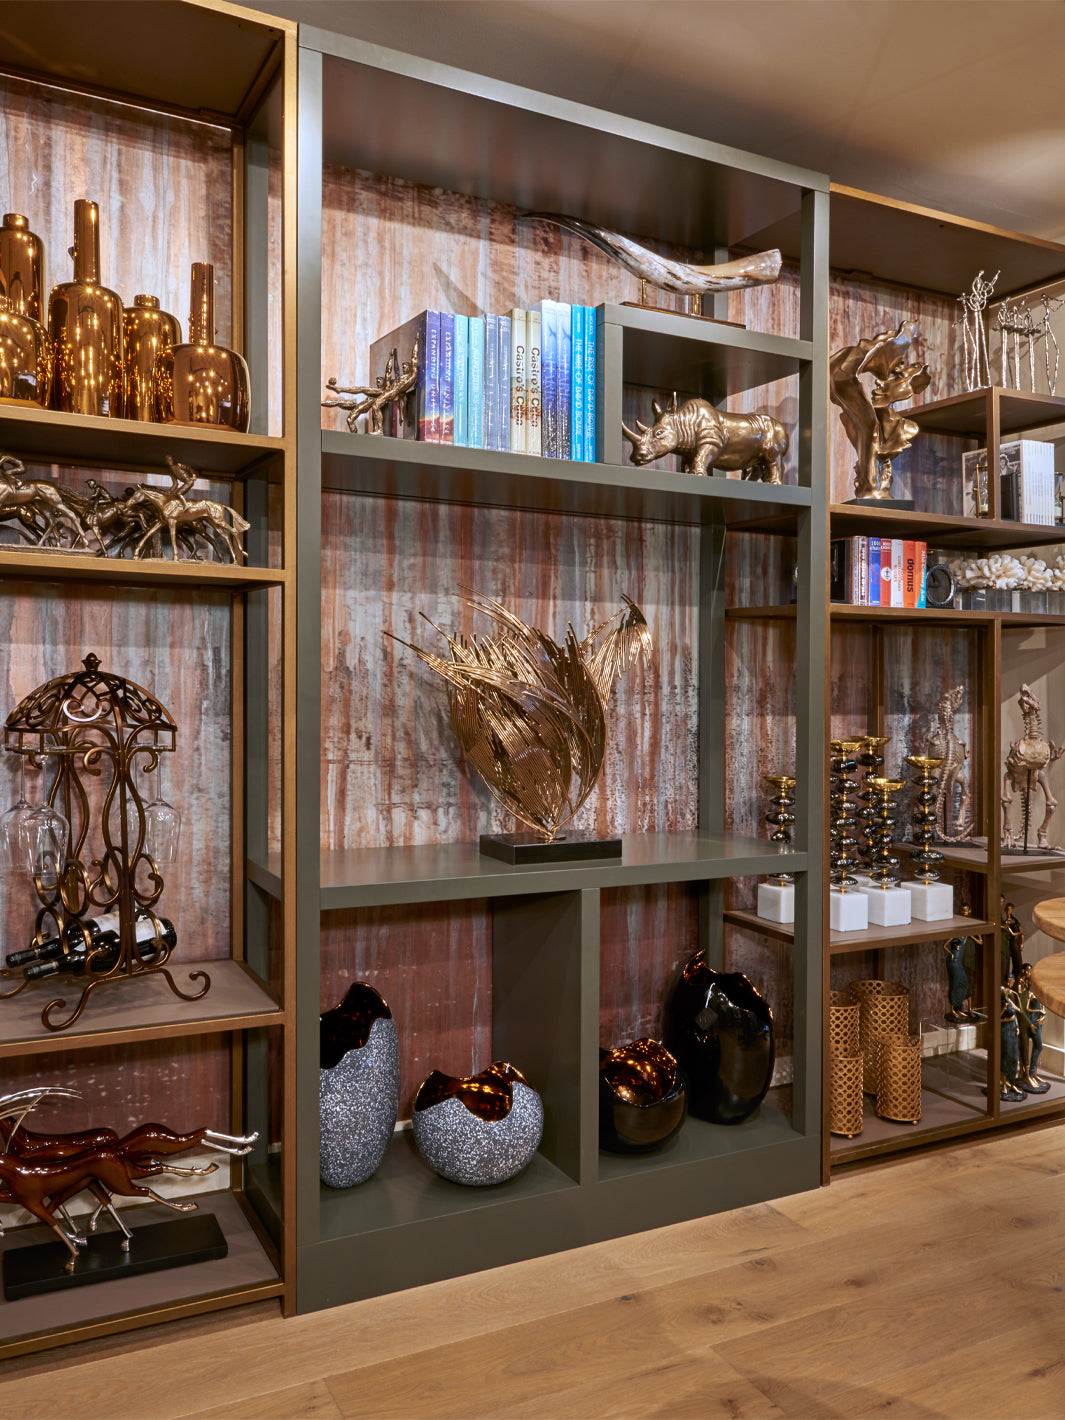 Retail Interior Design | Sculptures & Decorative Objects Display Unit | 5mm Design Home Accessories Shop | 5mm Design Store London